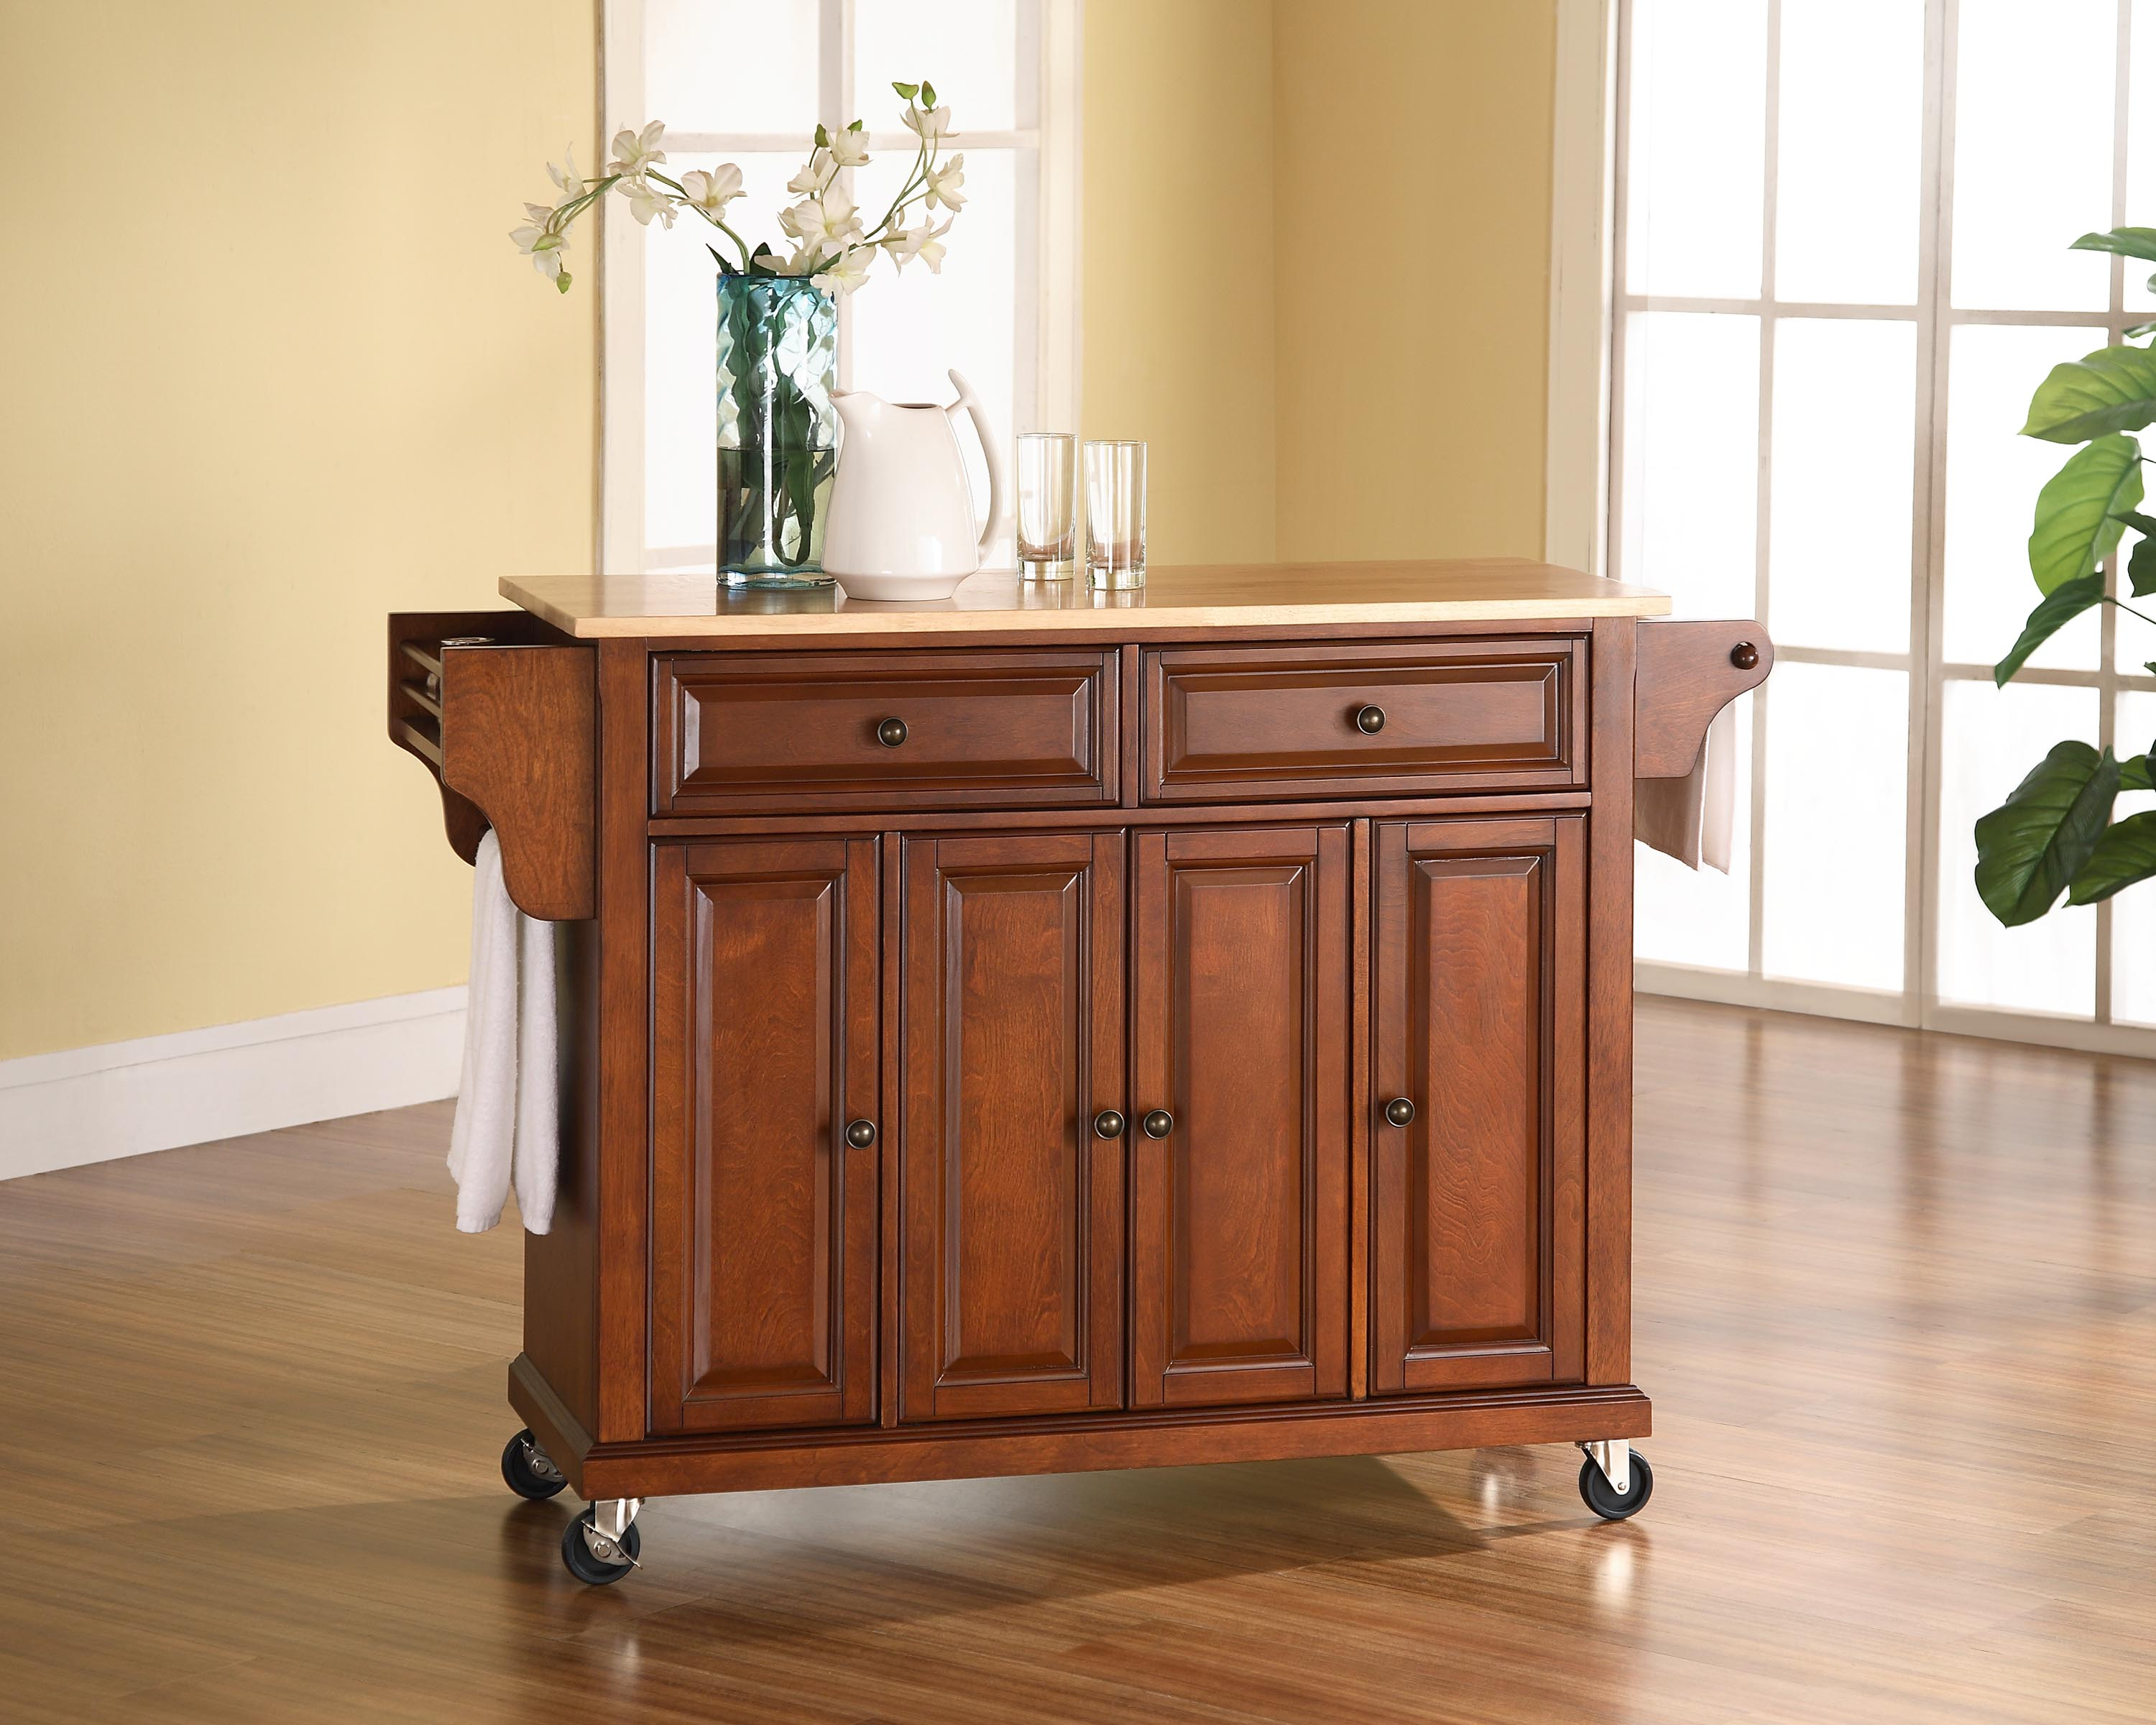 Bargain Superstore - Crosley Furniture Natural Wood Top Kitchen